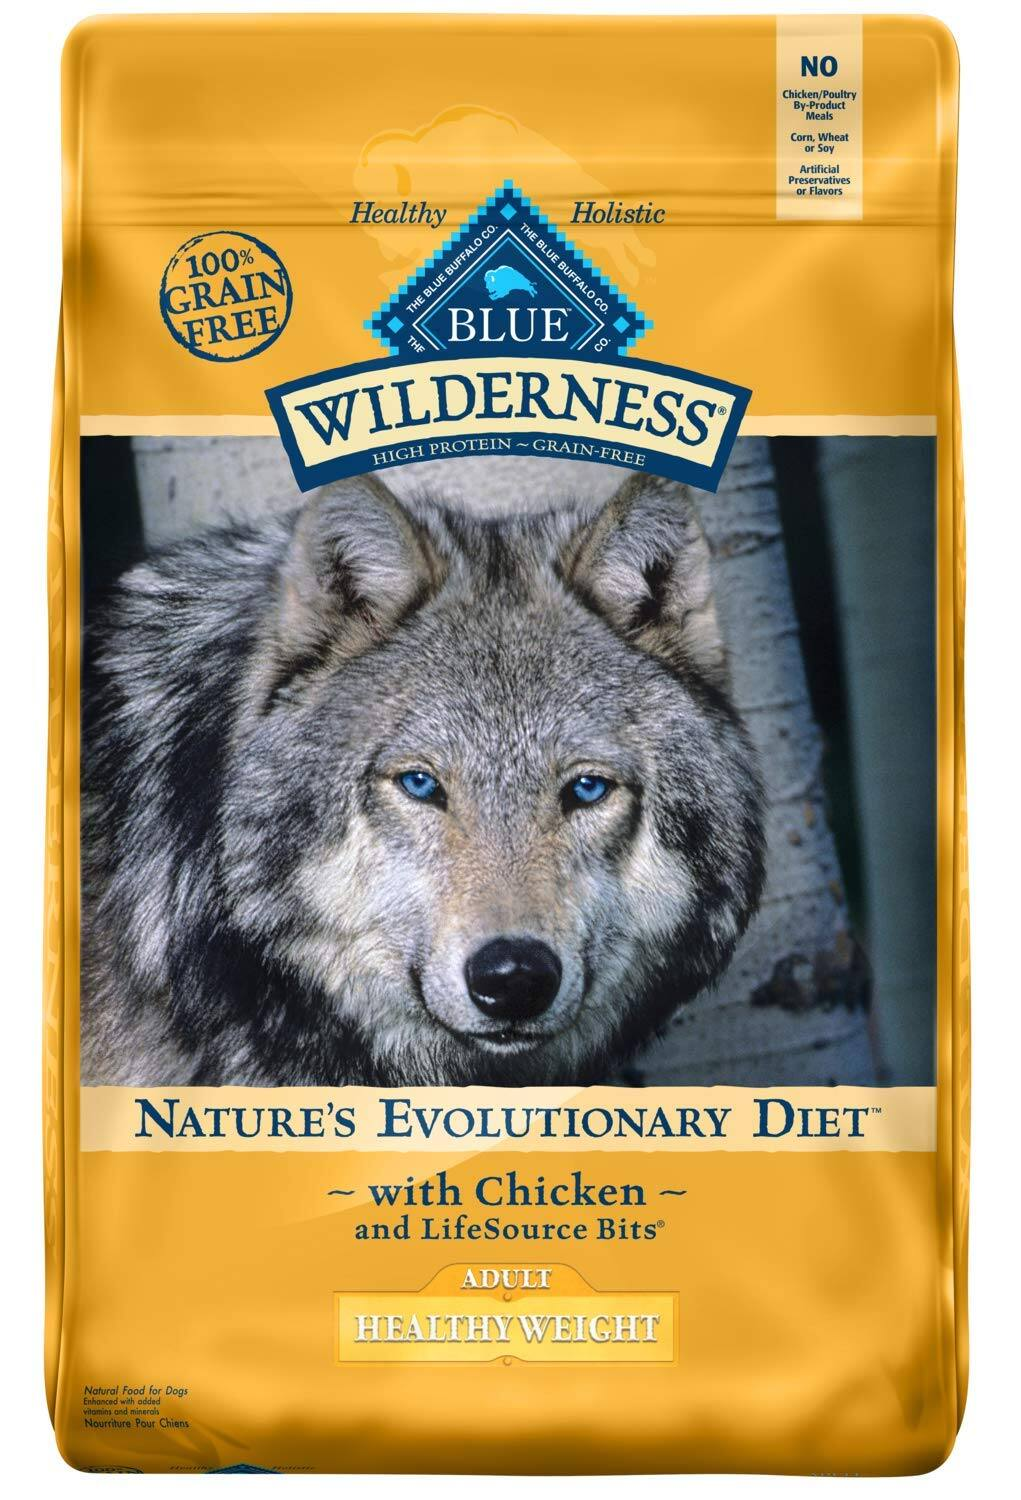 24-Lbs Blue Buffalo Wilderness Healthy Weight Recipe Dry Dog Food $32.45 w/ S&S + Free Shipping w/ Amazon Prime